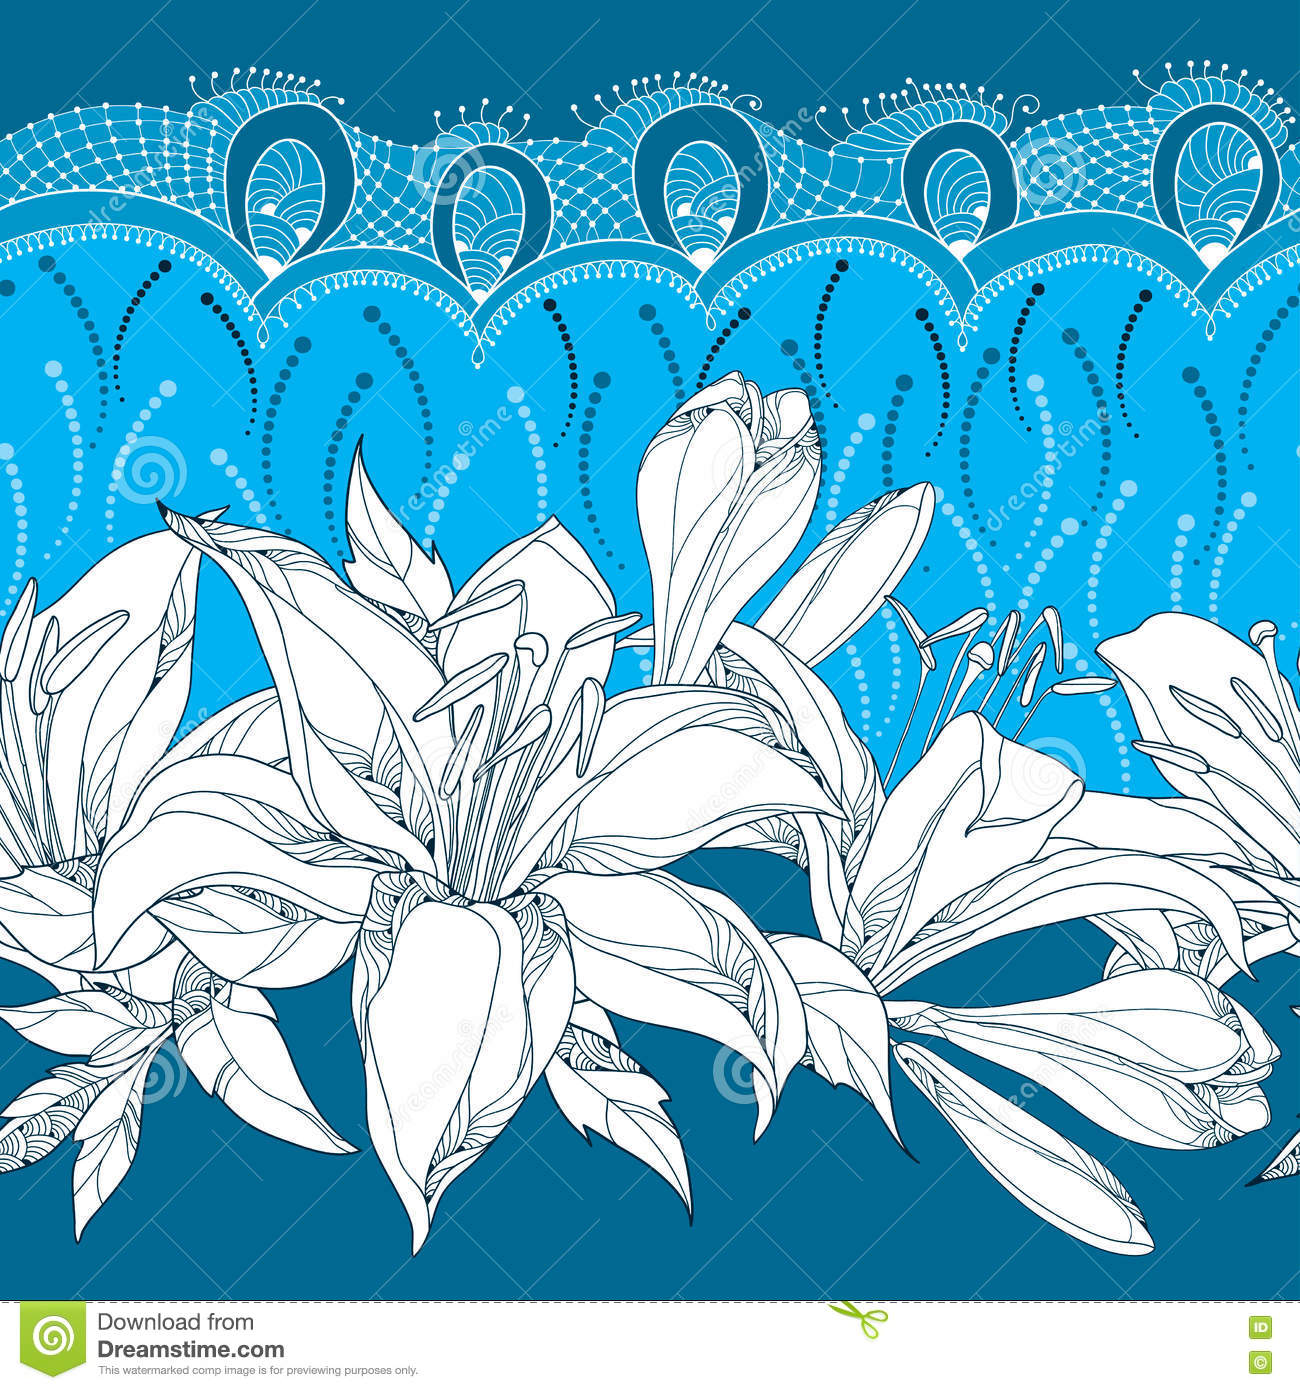 Download Seamless Pattern With Ornate Lily Flower In White, Buds, Leaves And Decorative Lace On The Blue Background. Floral Background. Stock Vector - Illustration of flora, frill: 74606591